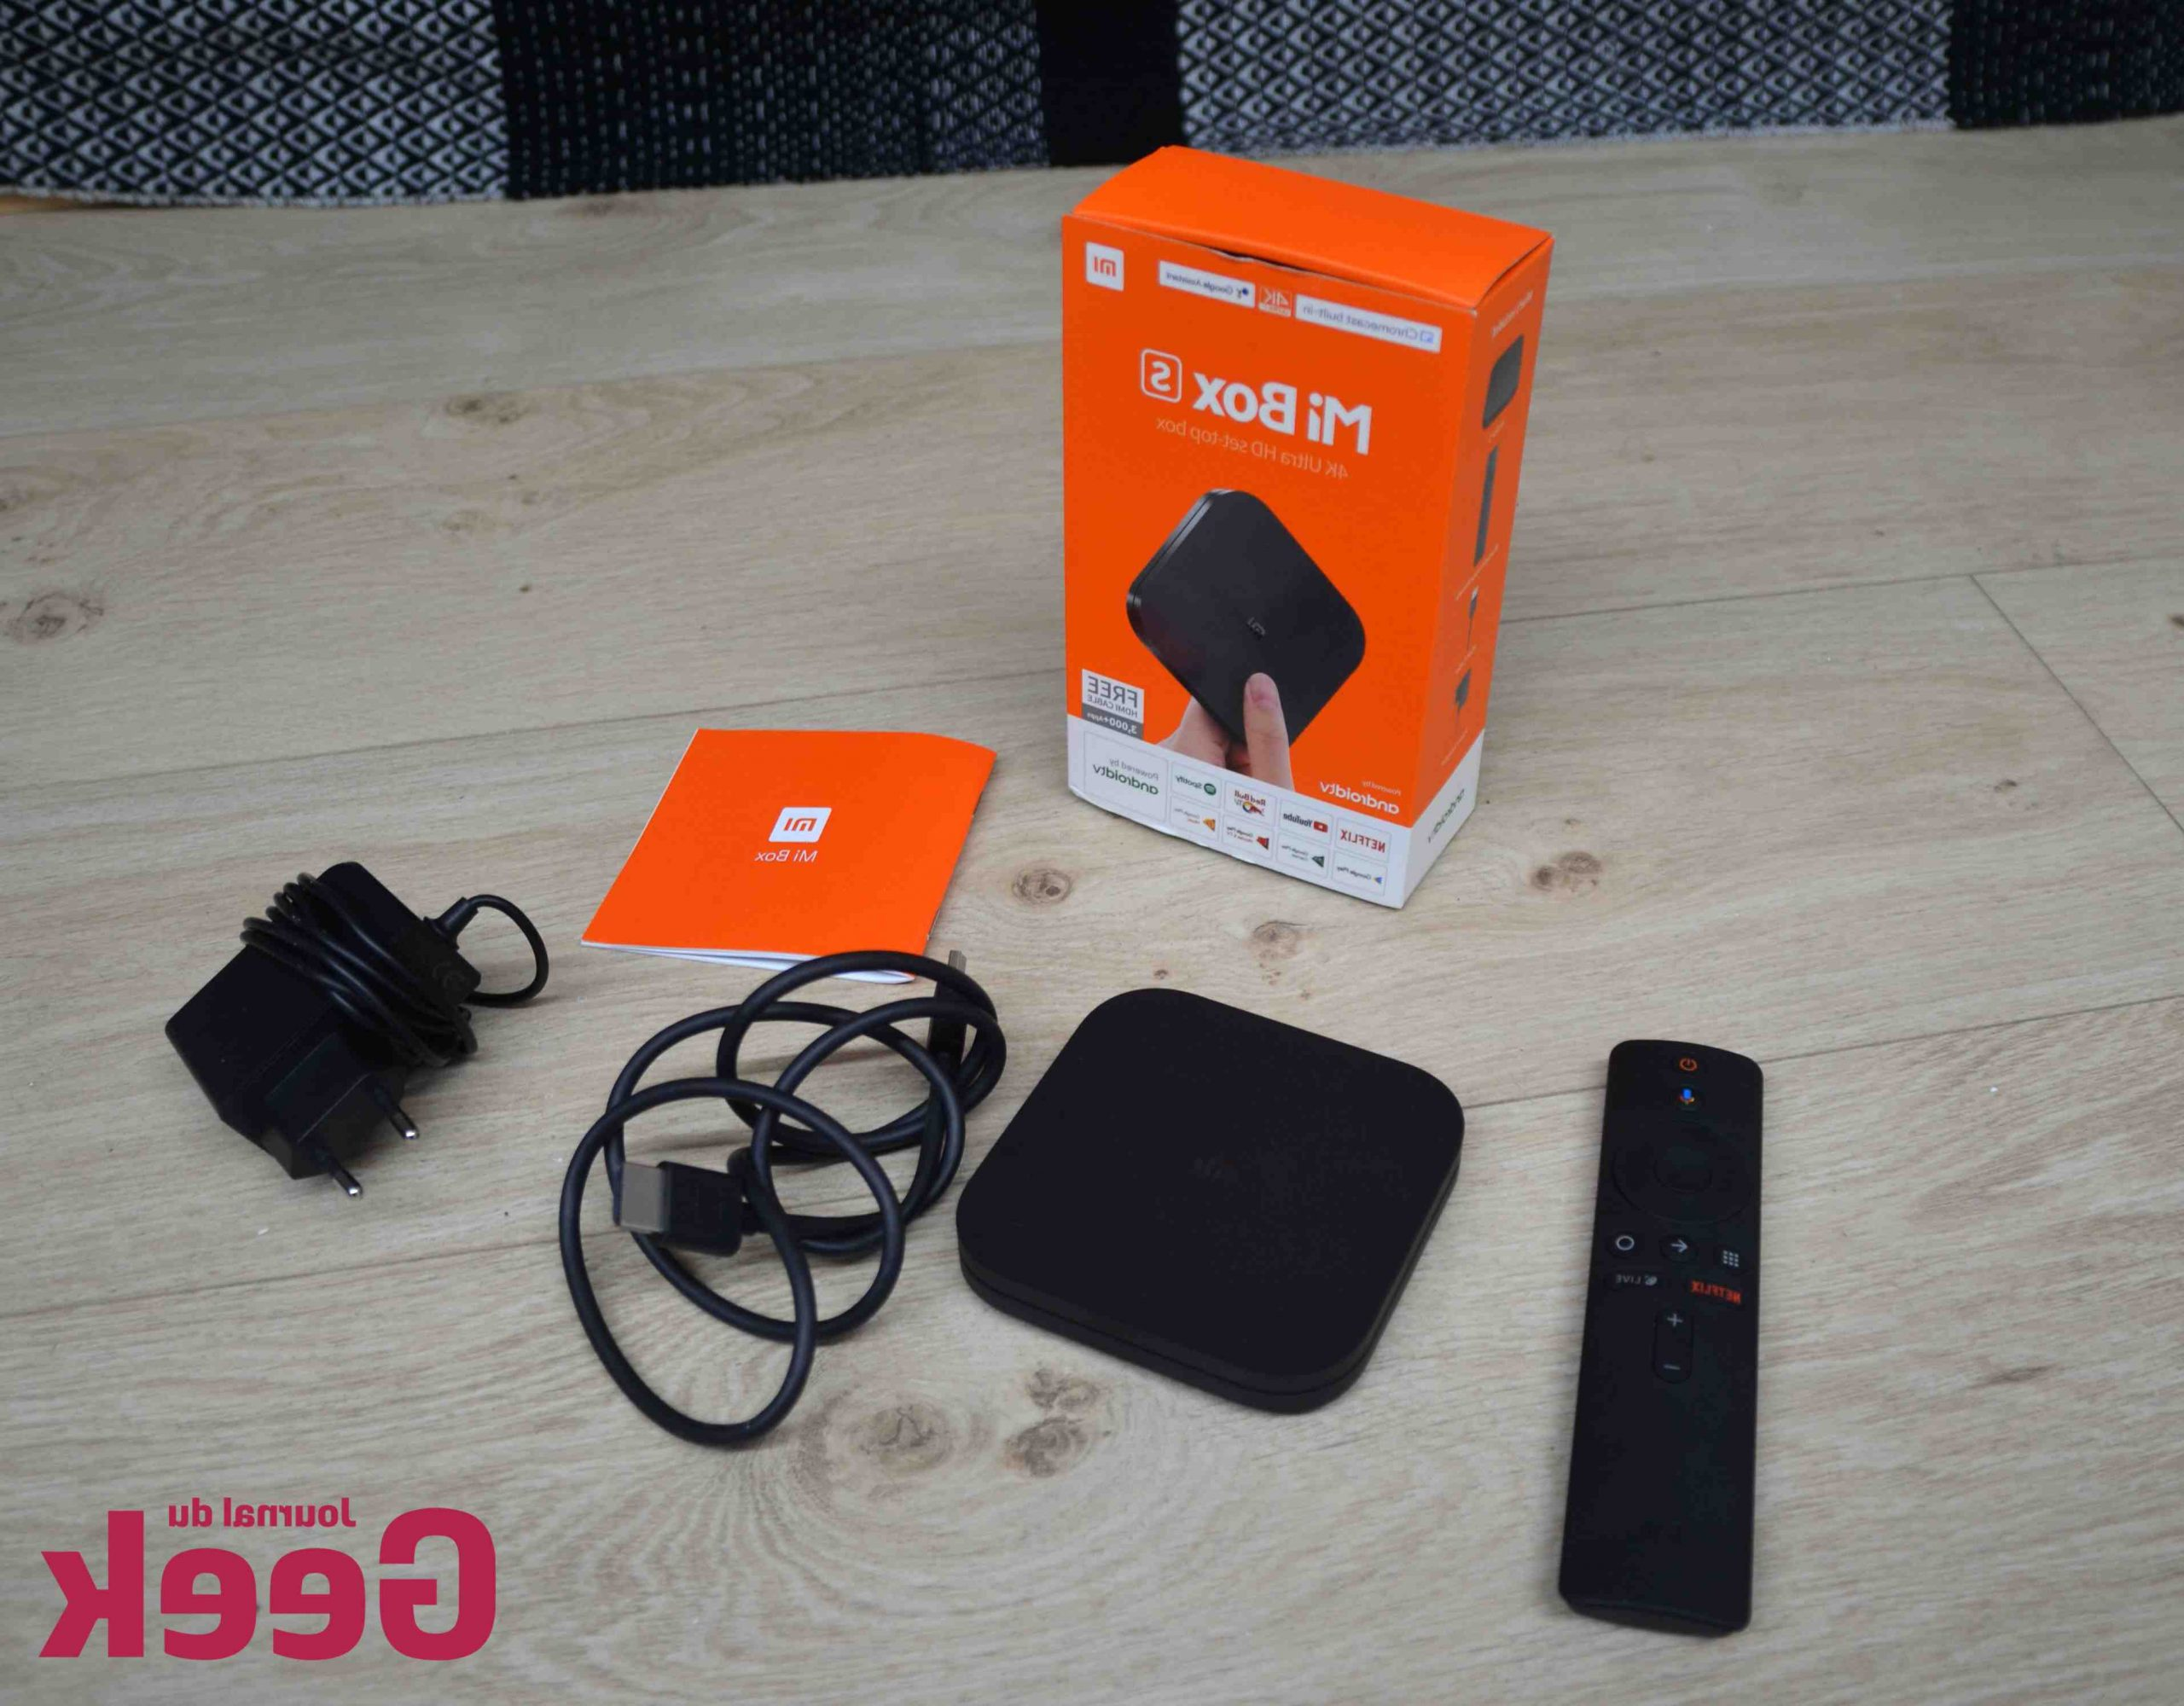 Comment choisir son Android box ?